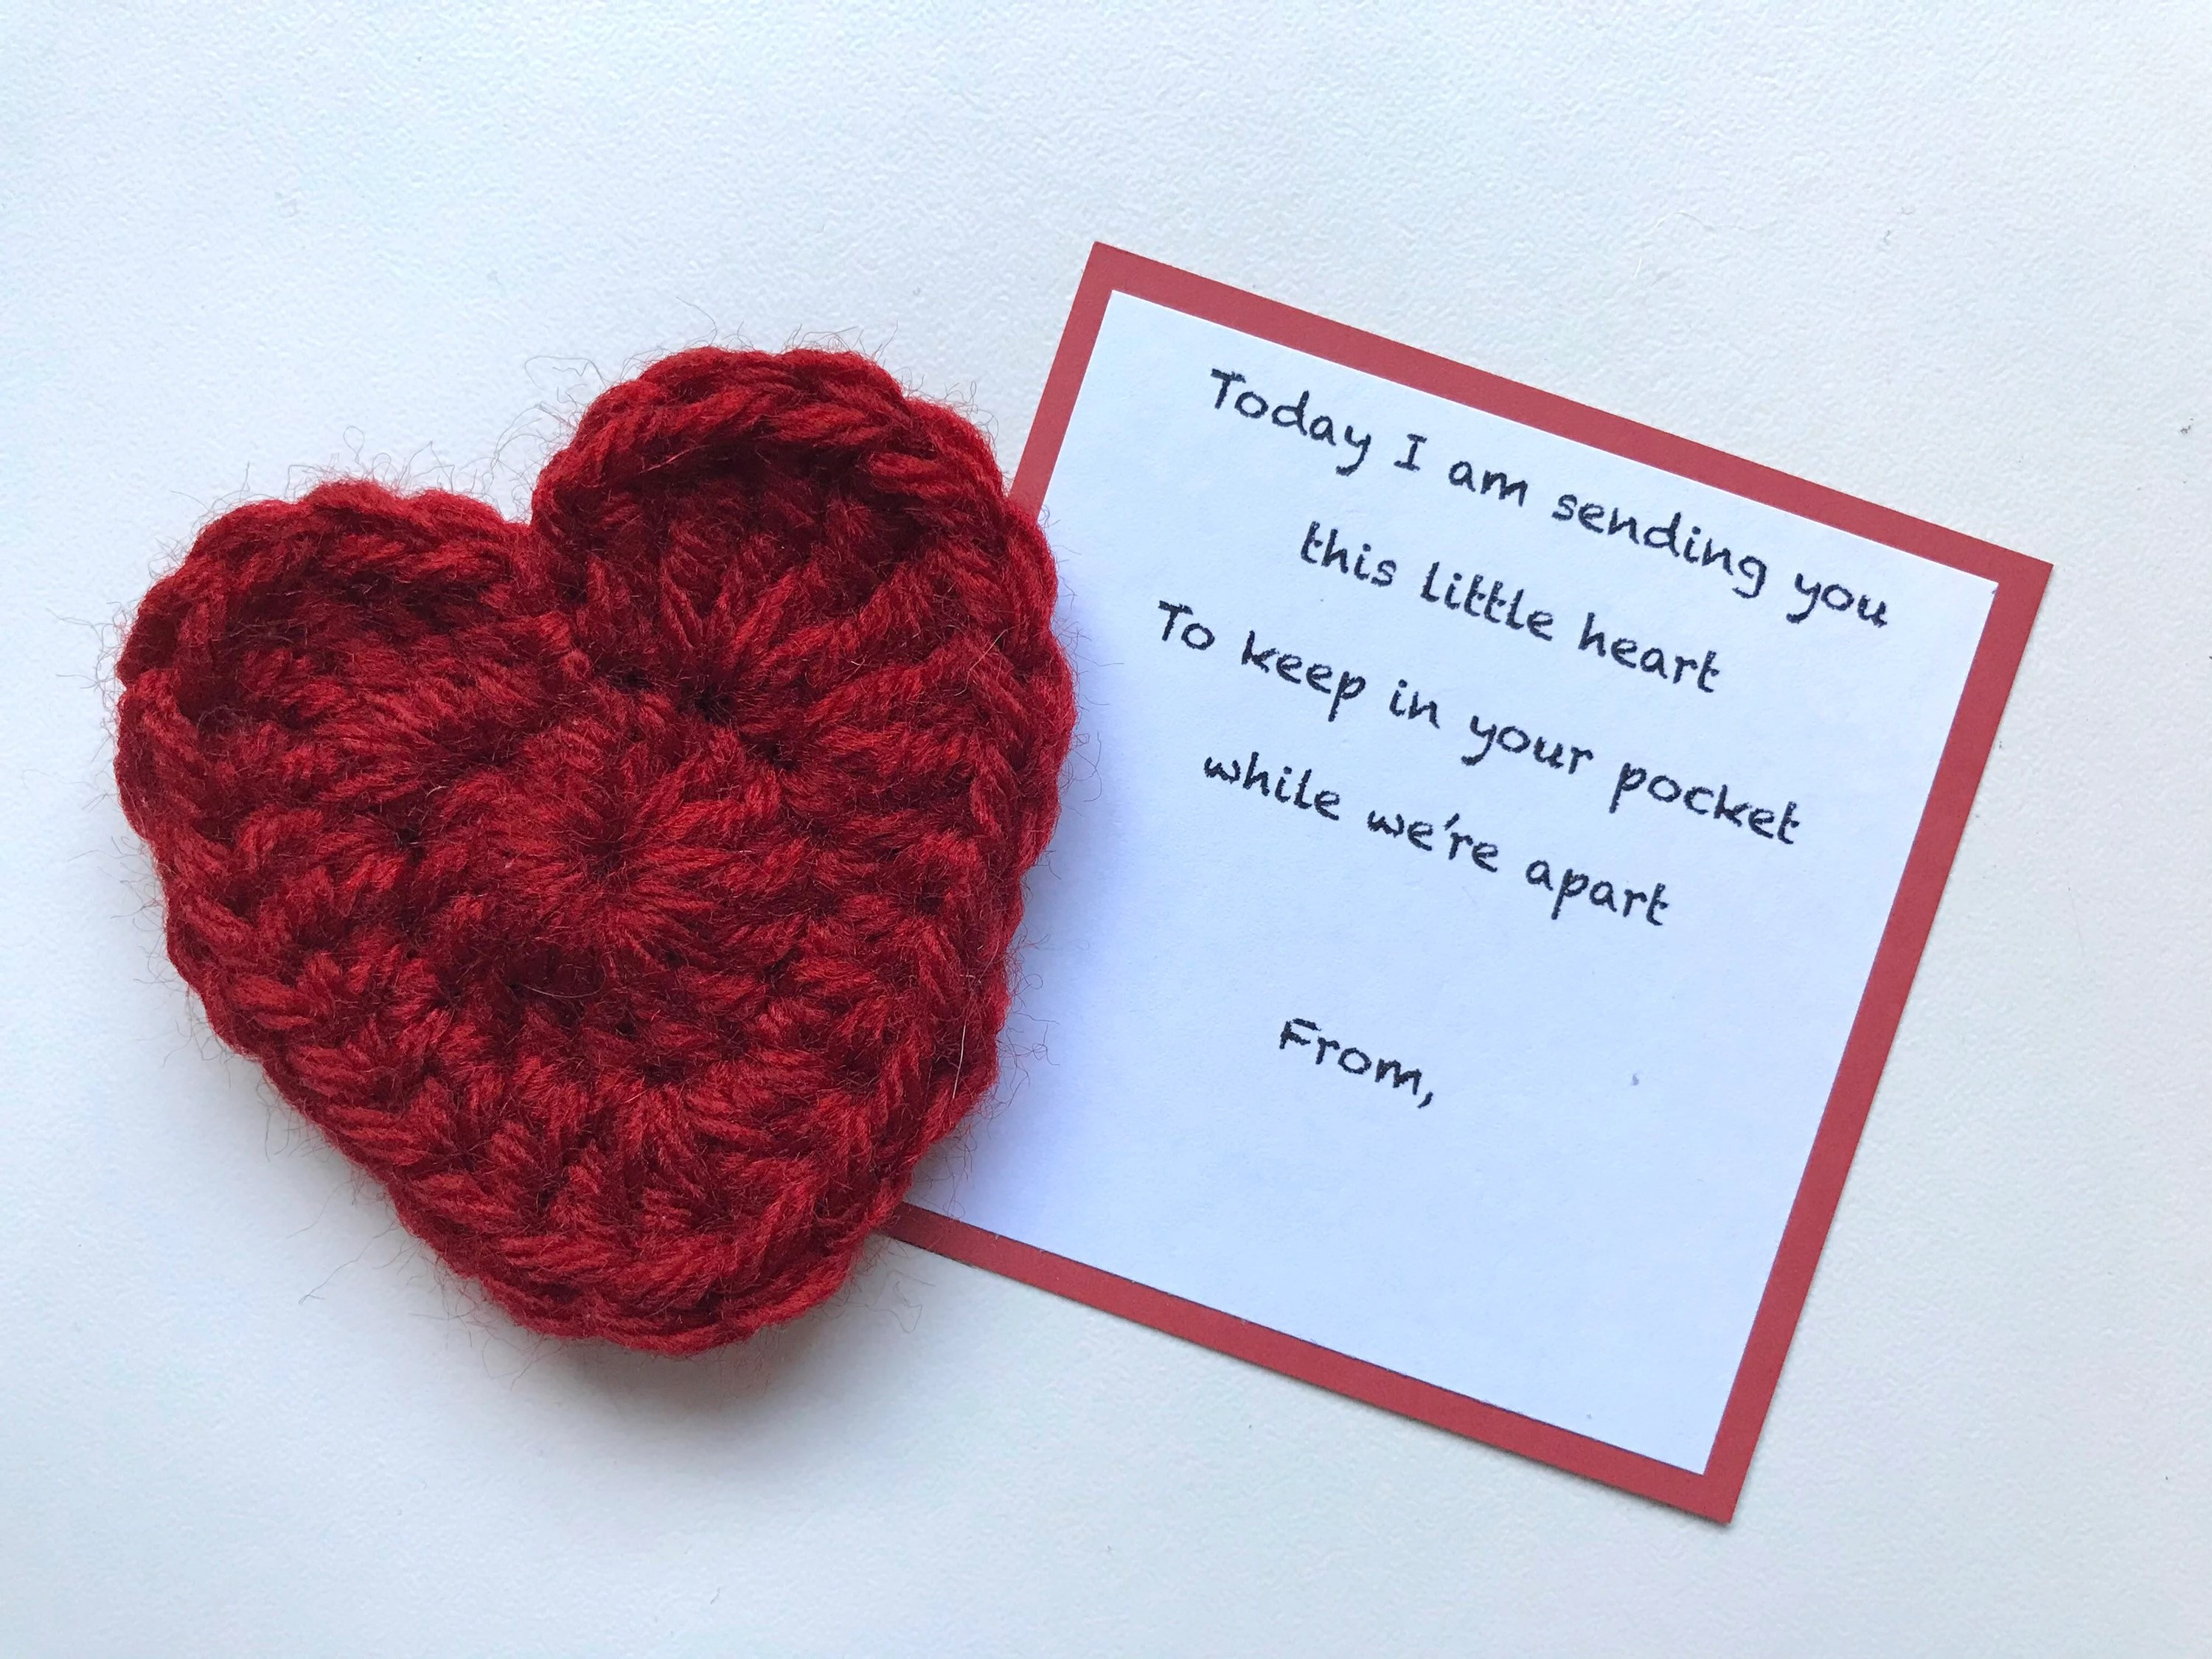 Crocheted Pocket Heart Memento And Poem Card To Send To Etsy